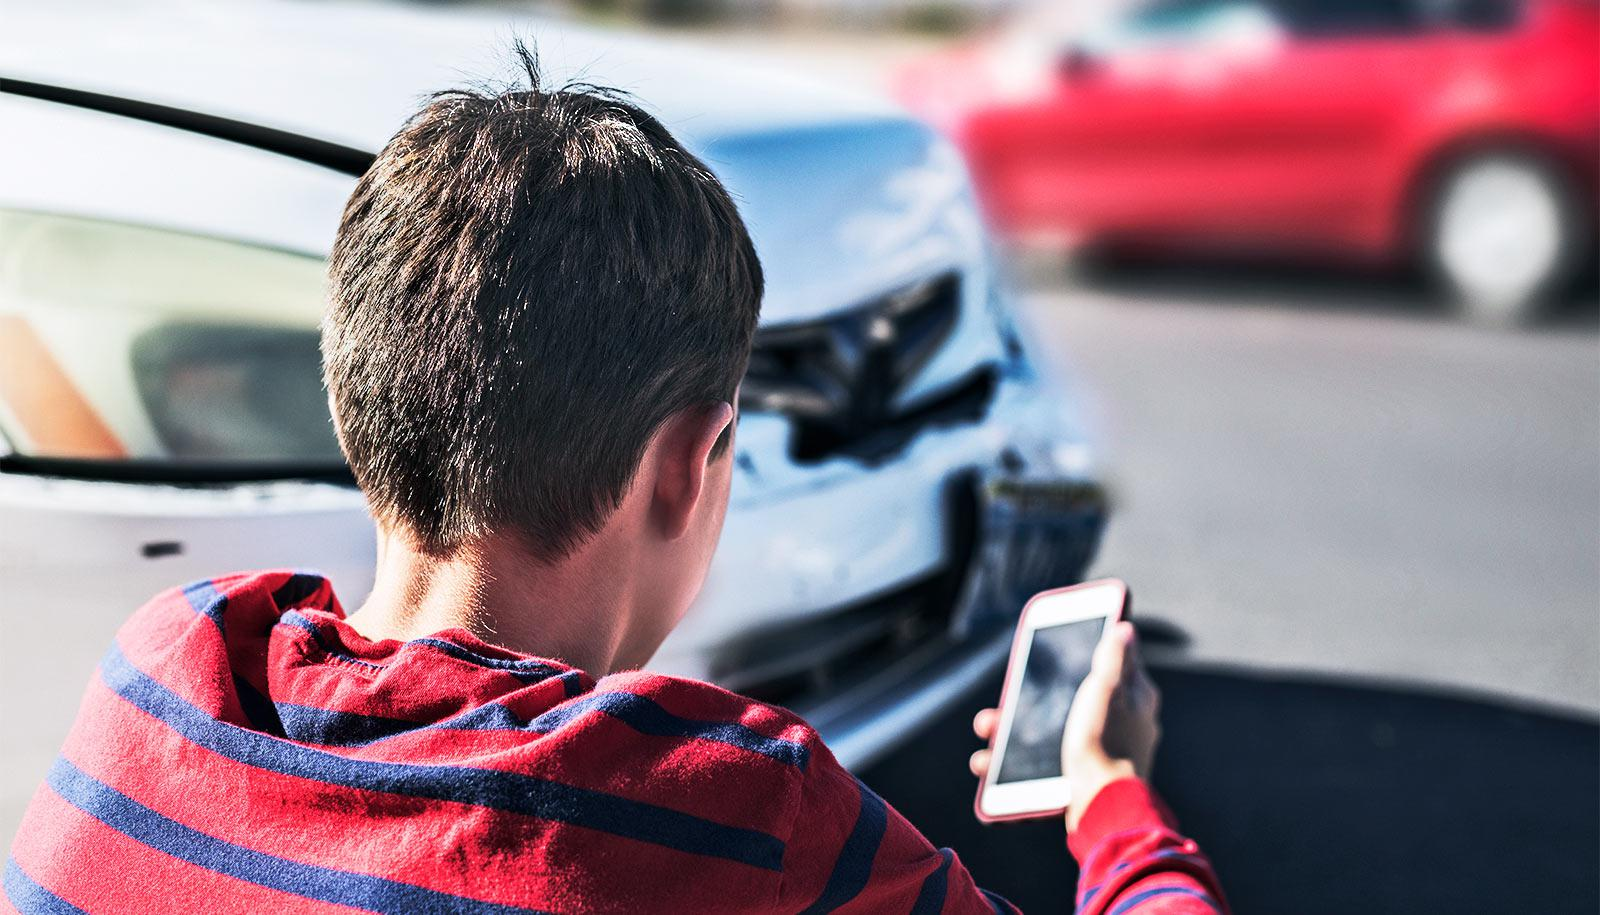 A teen in a red shirt looks at their phone while sitting on the curb, ready to call, at the scene of a car accident